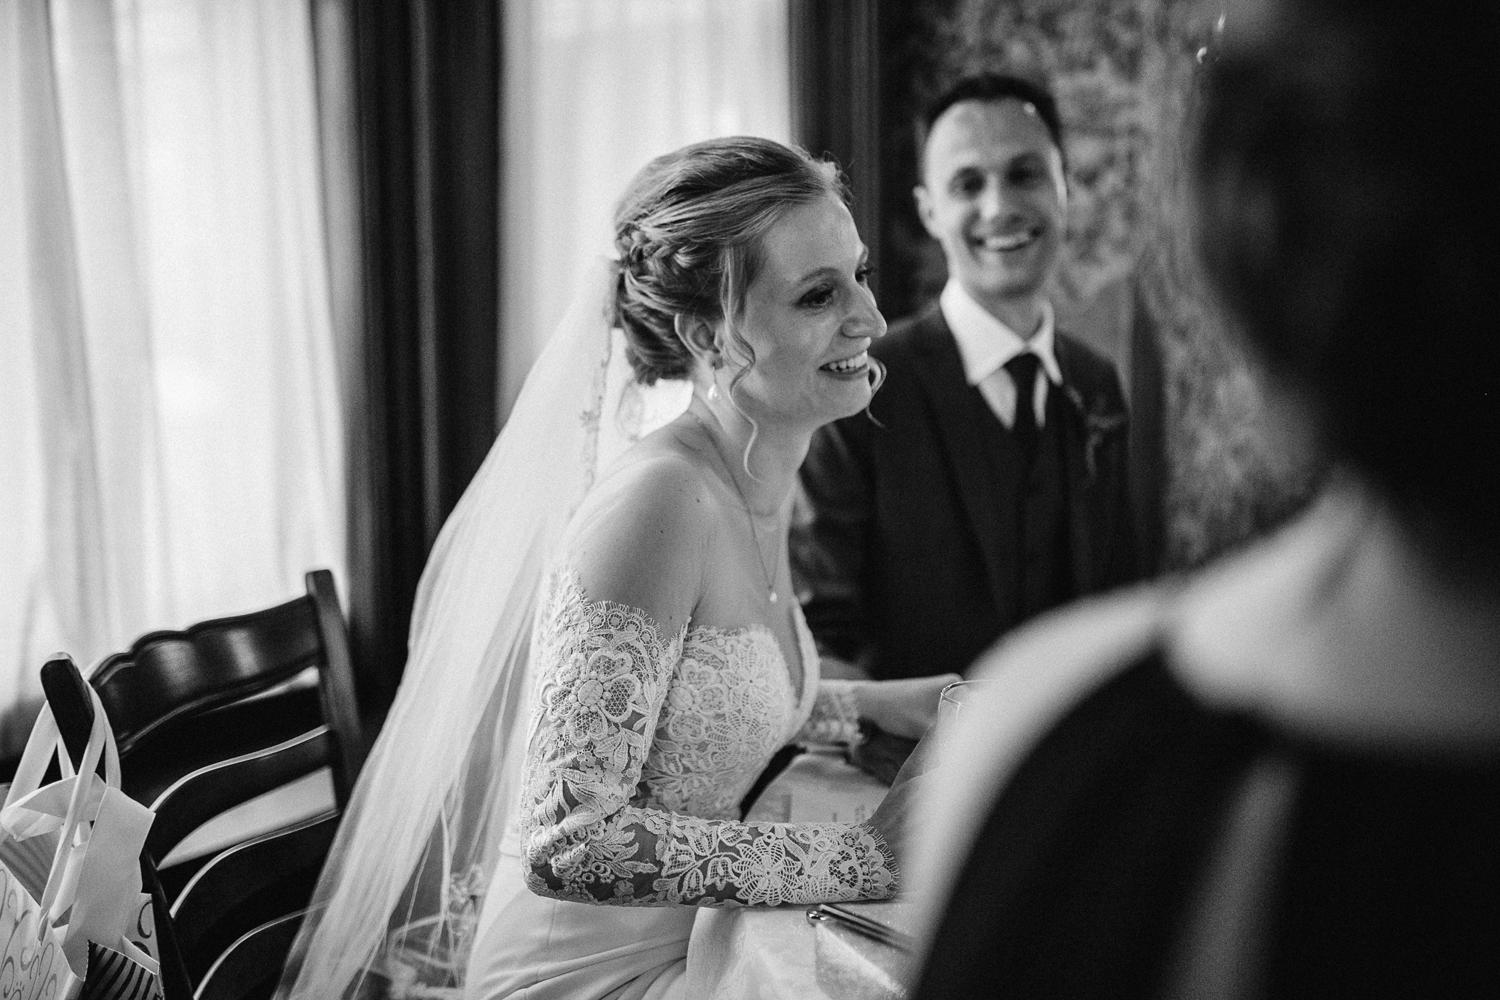 perth manor wedding - kerry ford photography-207.jpg